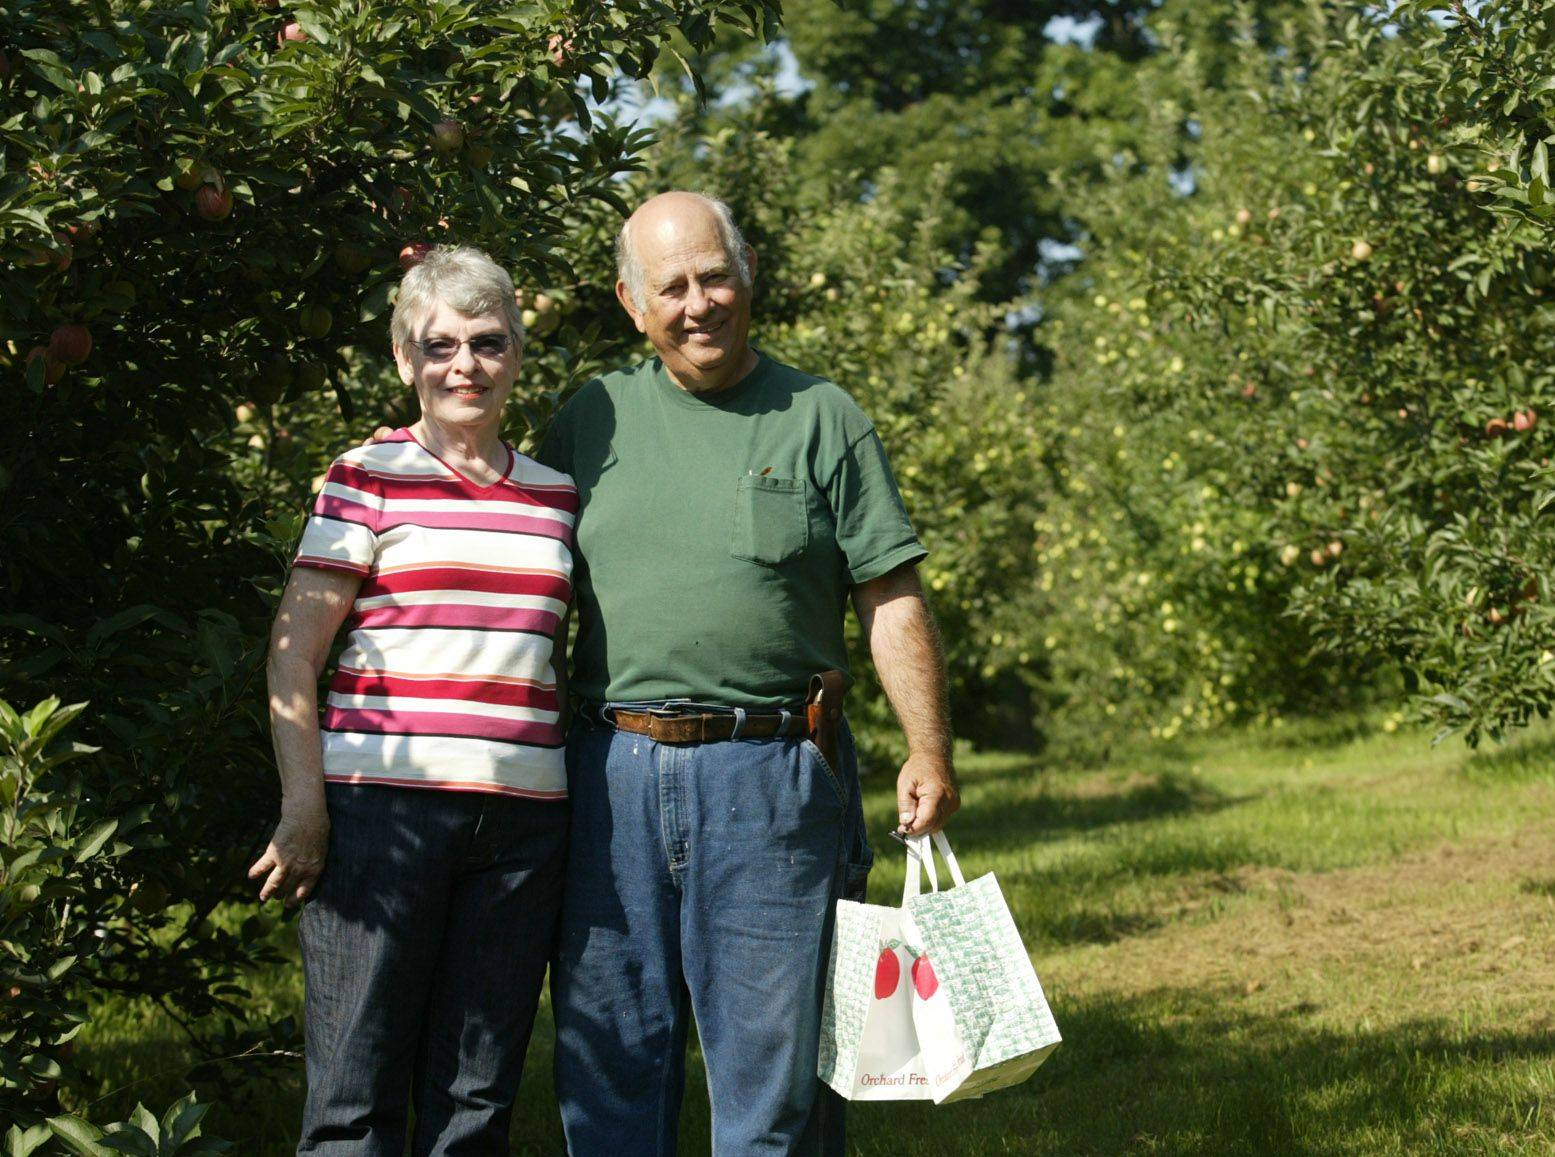 Velma and Mike Downes turned a hobby into the More Than Delicious apple orchard in Woodstock.